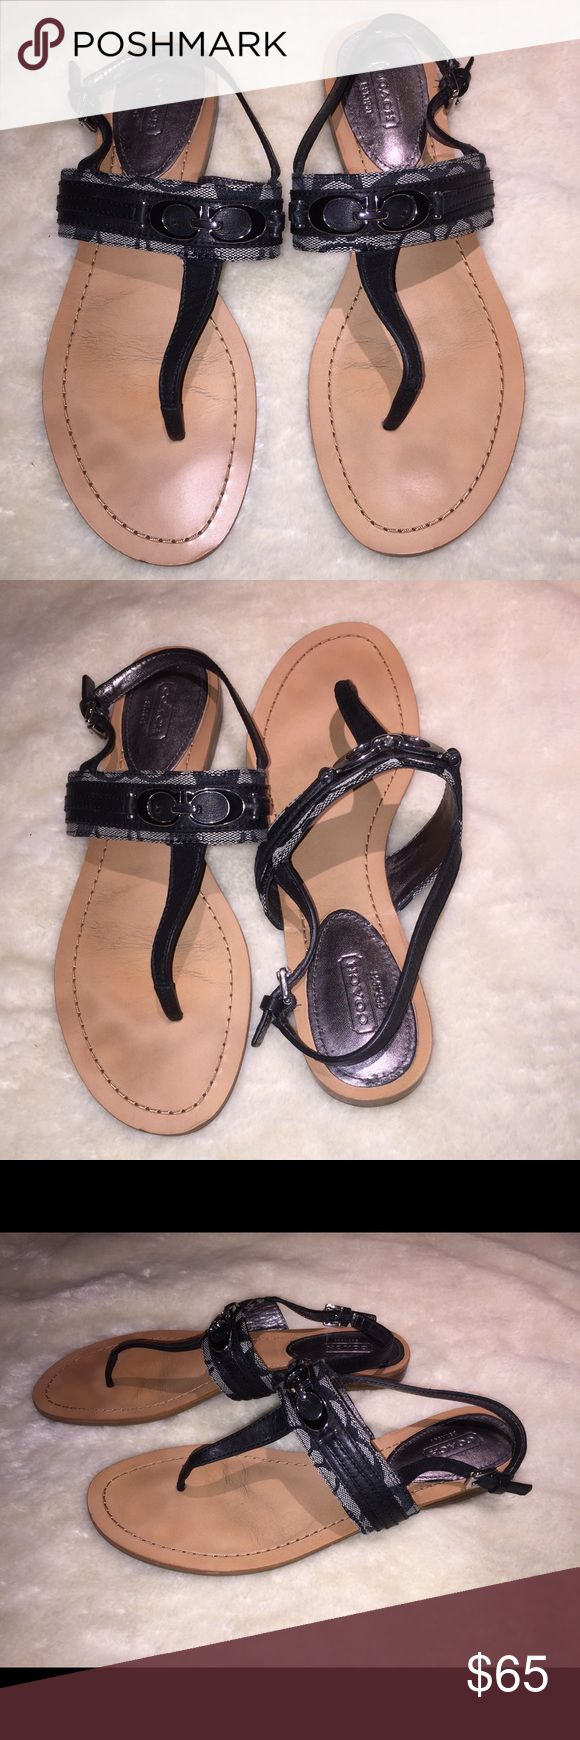 Woman's Coach Flat Logo Sandals Shoes GUC 10 Woman's Coach Logo Sandals  Size 10  Black & Tan with Signature Logo  Adjustable Strap Close  These are in Great Shape Coach Shoes Sandals